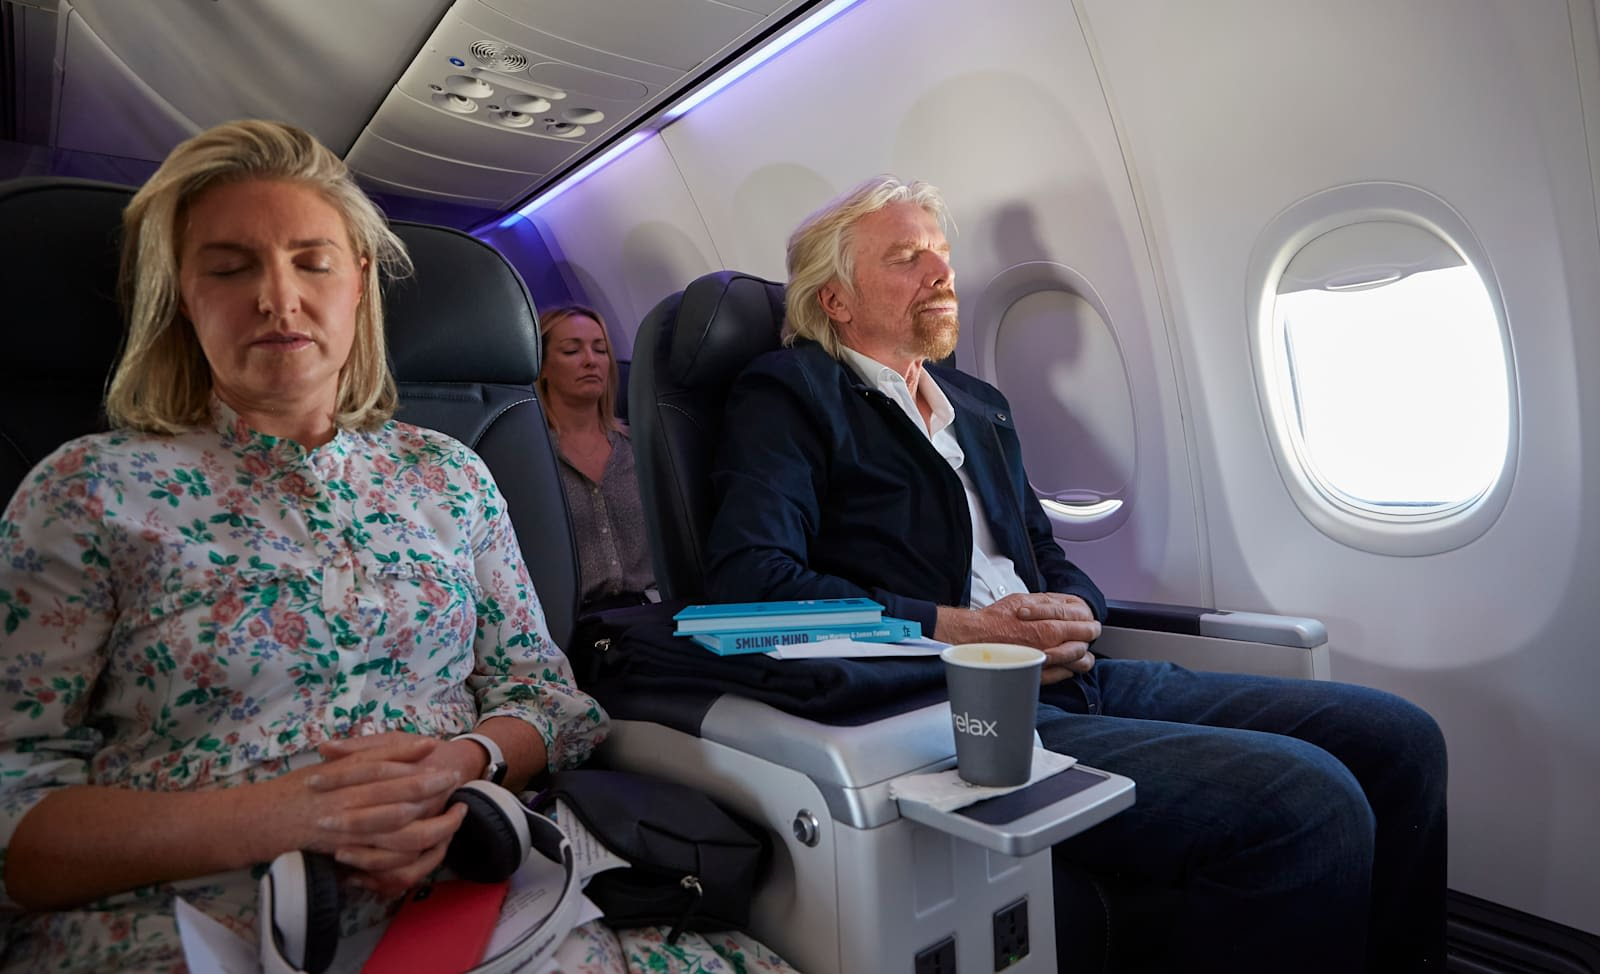 Richard Branson meditates on an aeroplane, with others doing the same around him